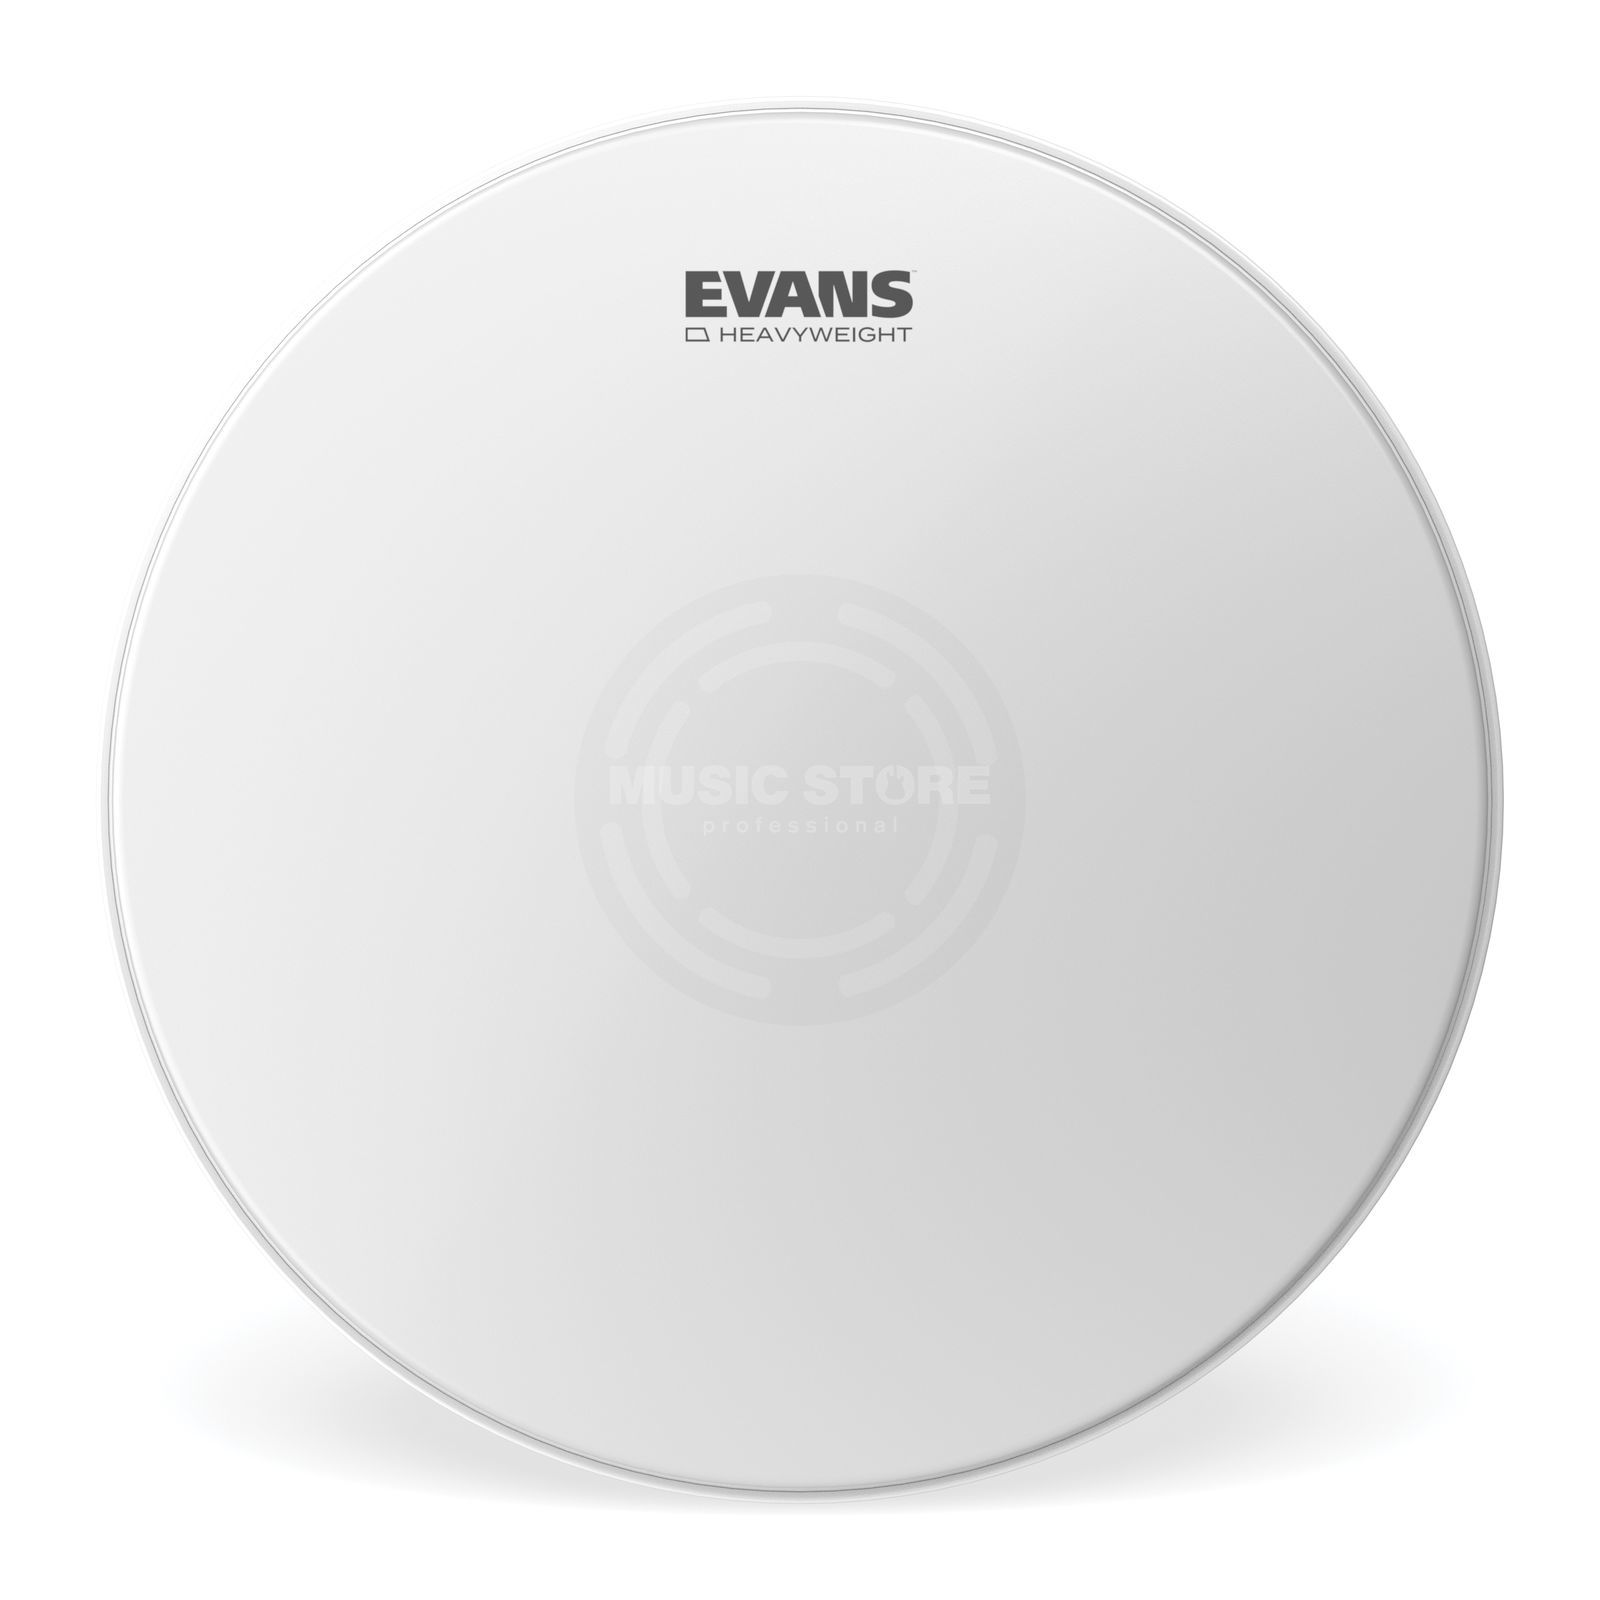 "Evans Heavyweight Coated B14HW, 14"", Snare Batter Produktbillede"